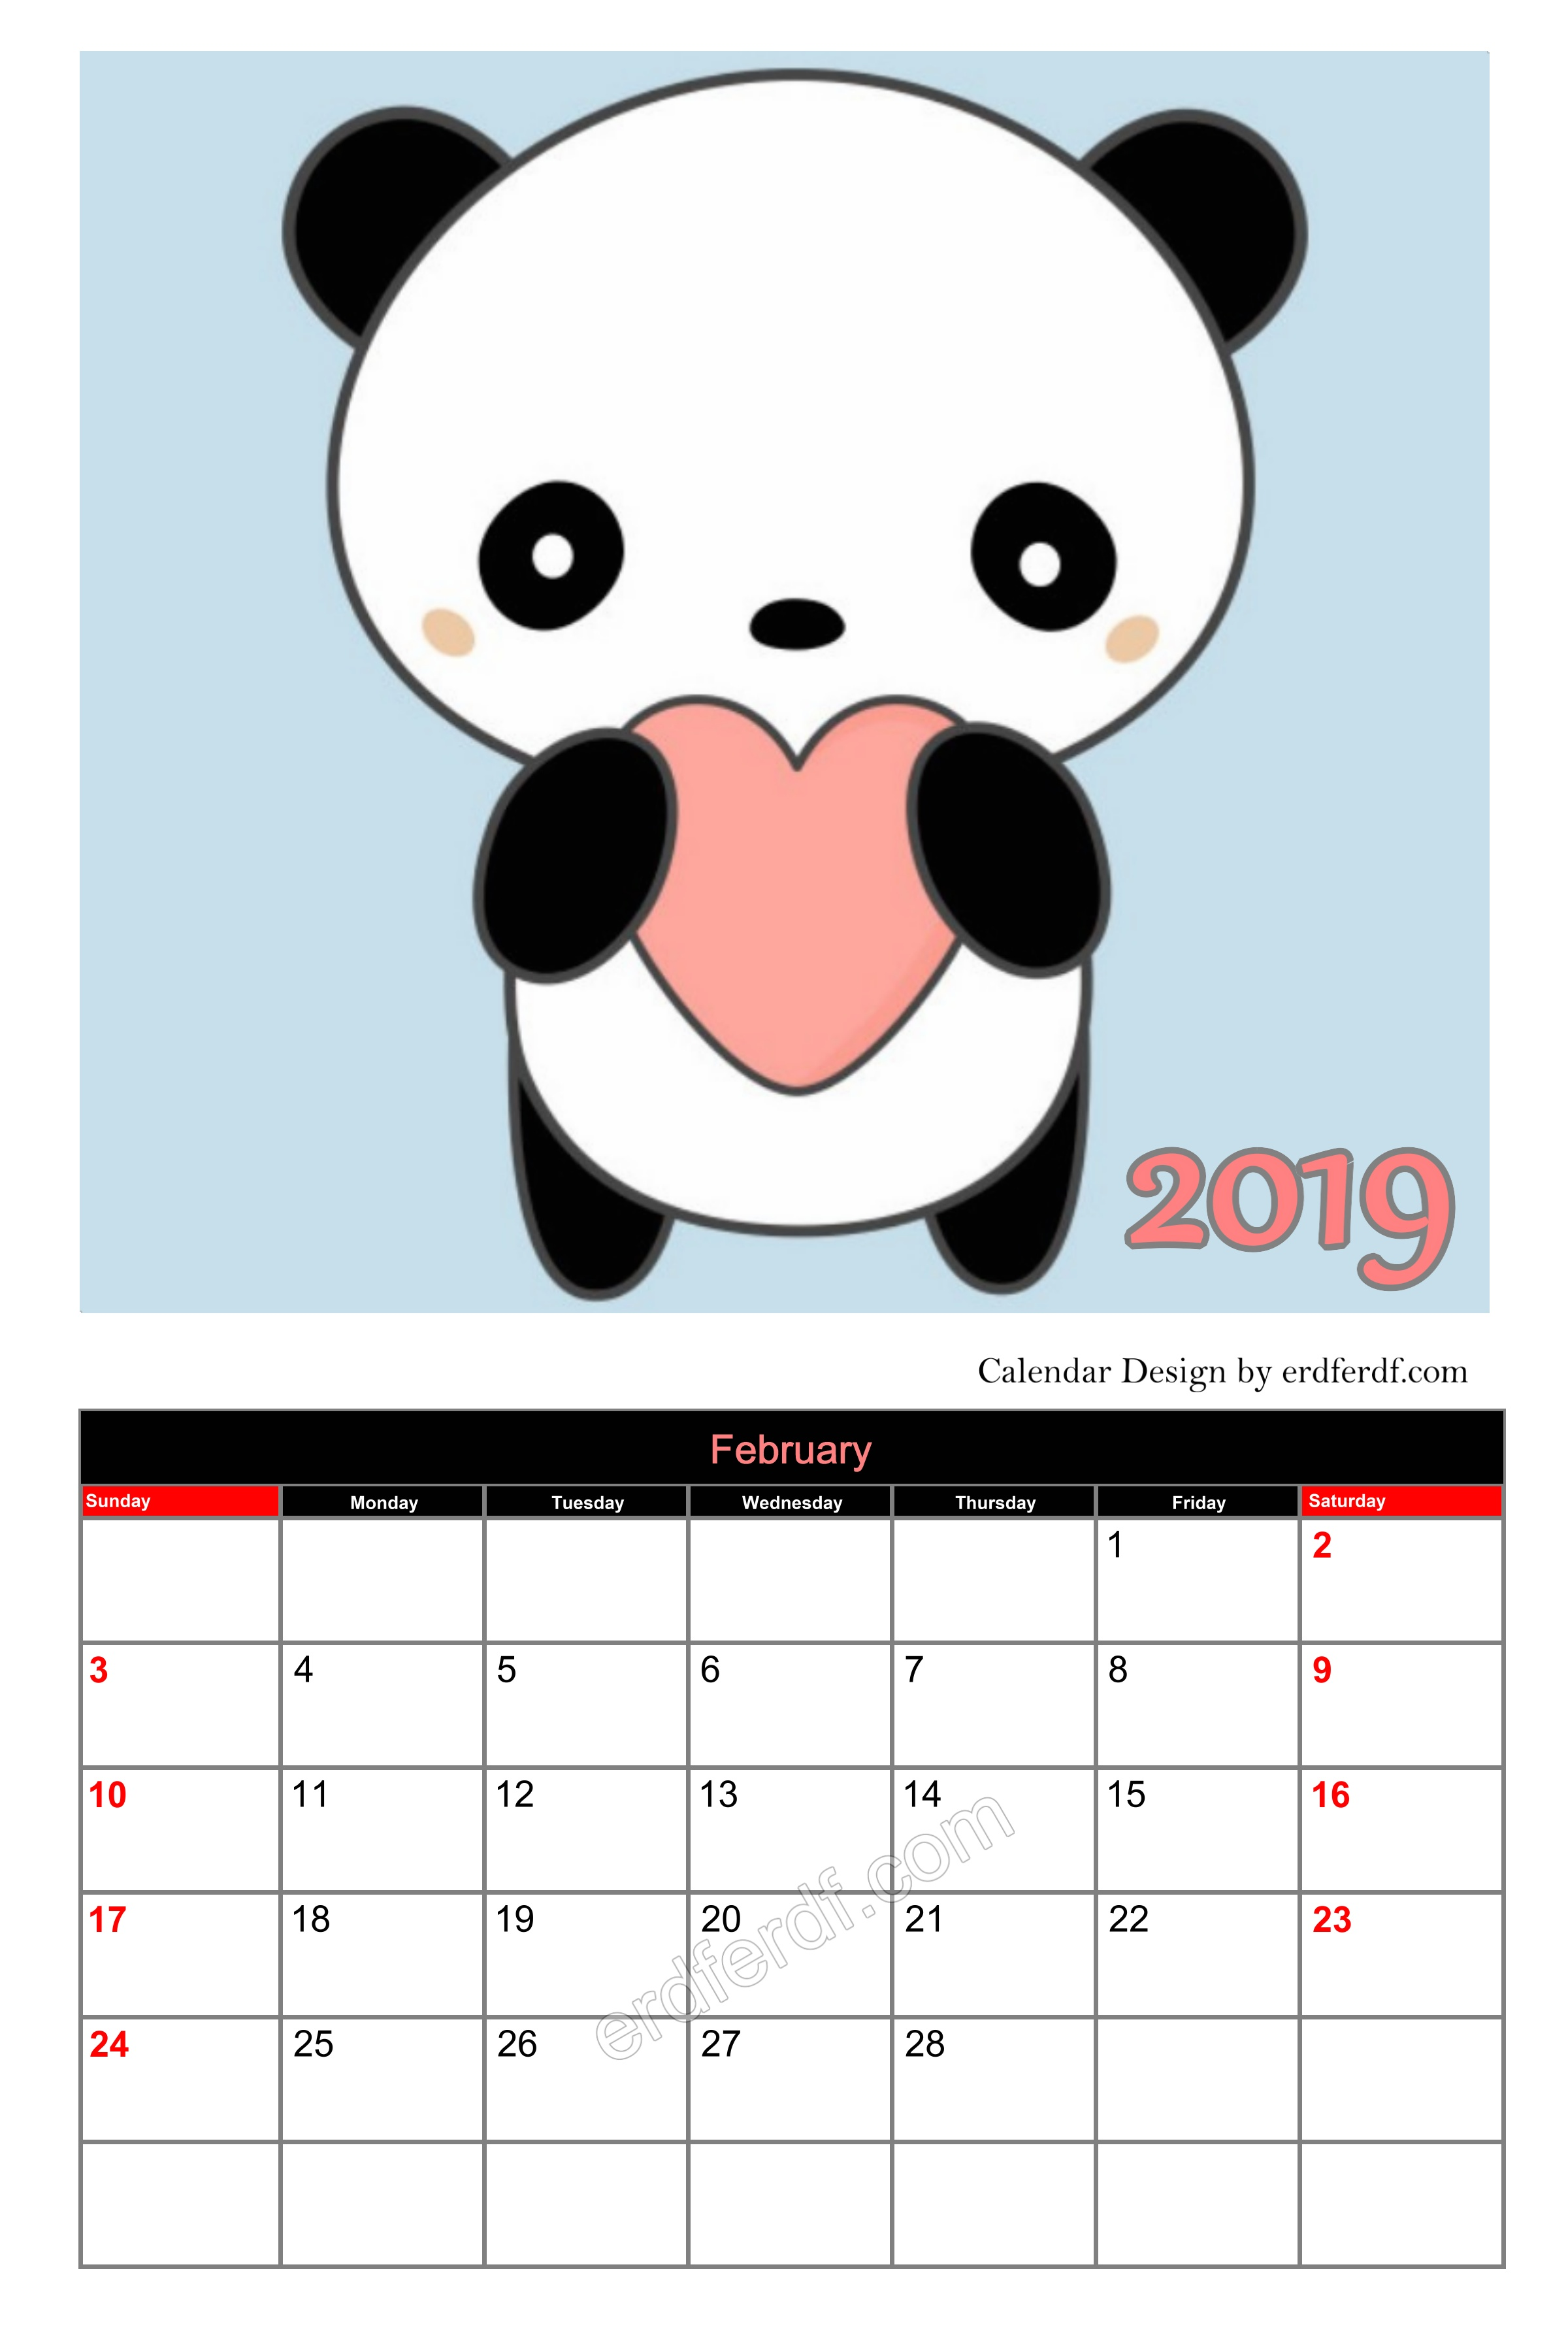 Panda Cute Editable Calendar 2019 February Cute Free Download